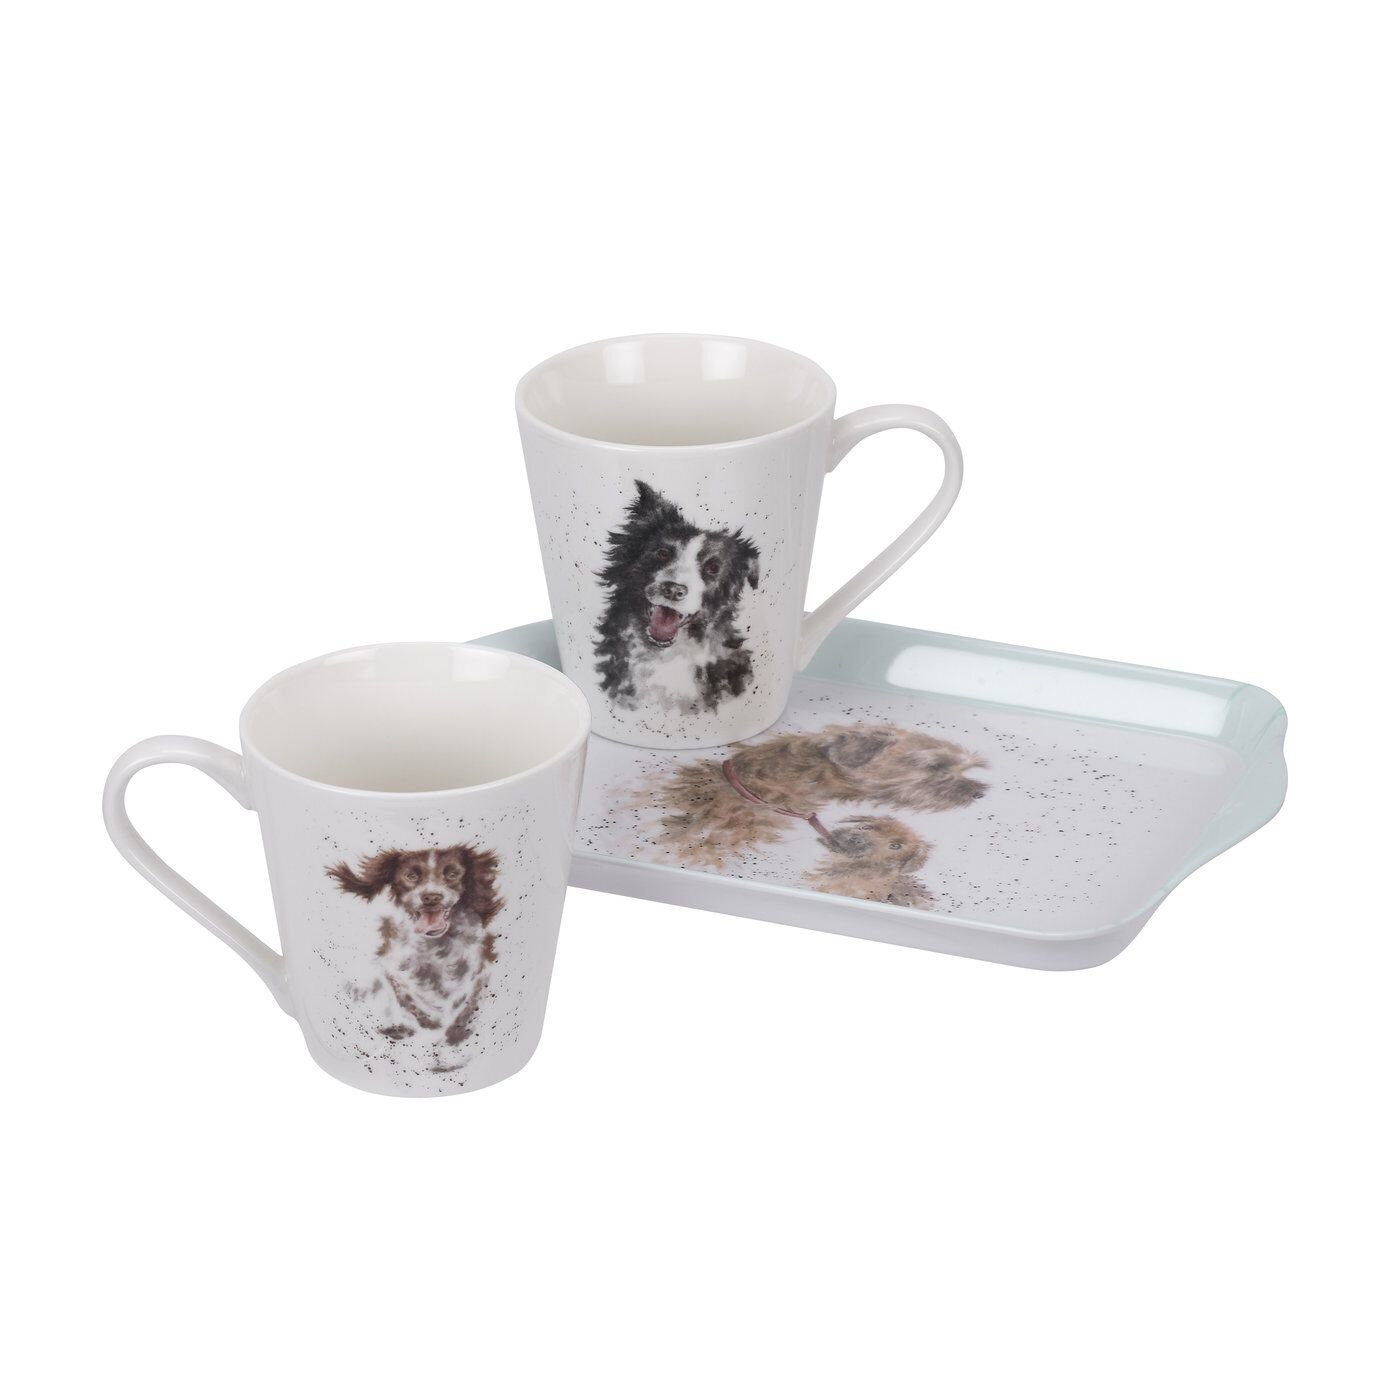 Pimpernel Wrendale Designs Mug and Tray Set - Dogs 1);